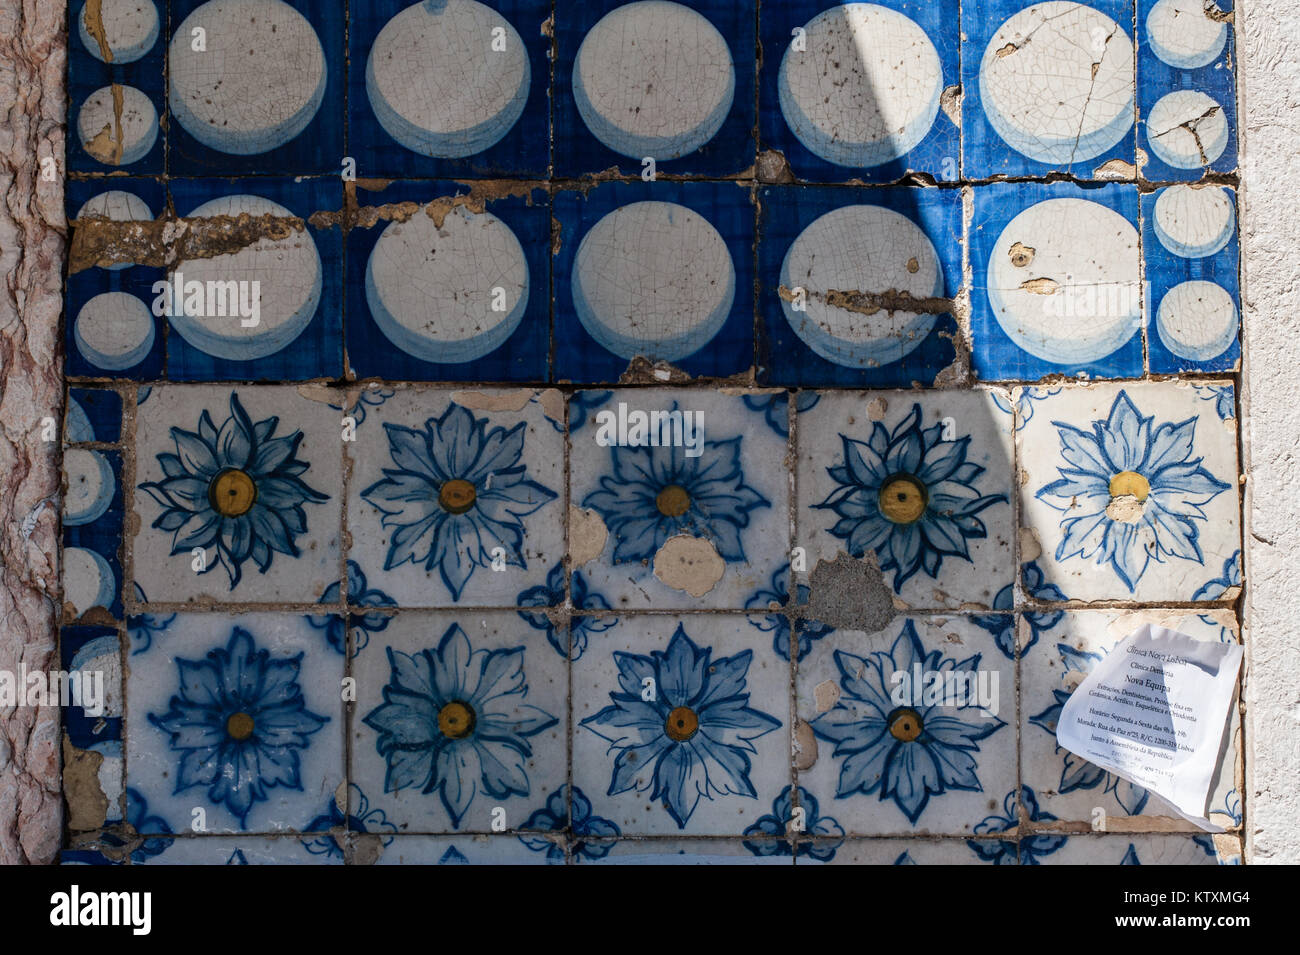 Circular tiling stock photos circular tiling stock images alamy portuguese azulejo ceramic tiles with circular and floral patterns decorate the external walls of a dailygadgetfo Gallery